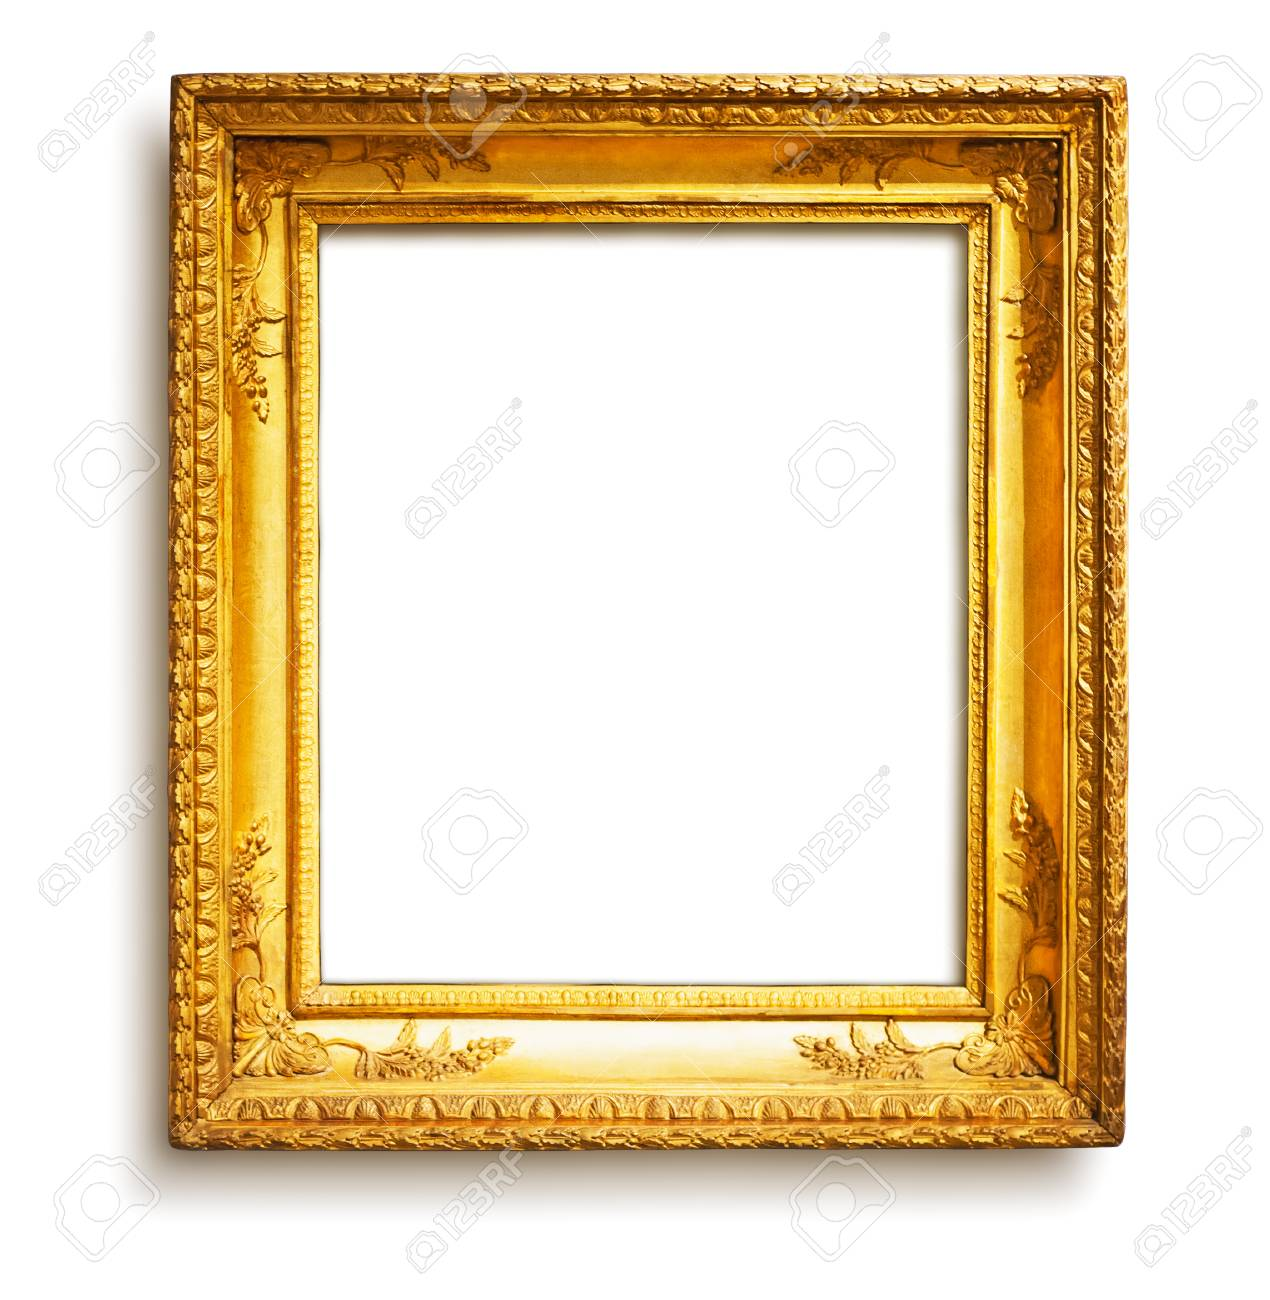 Gold Rahmen Vintage Gold Frame With Shadow On White Background, Clipping.. Stock Photo, Picture And Royalty Free Image. Image 24190344.